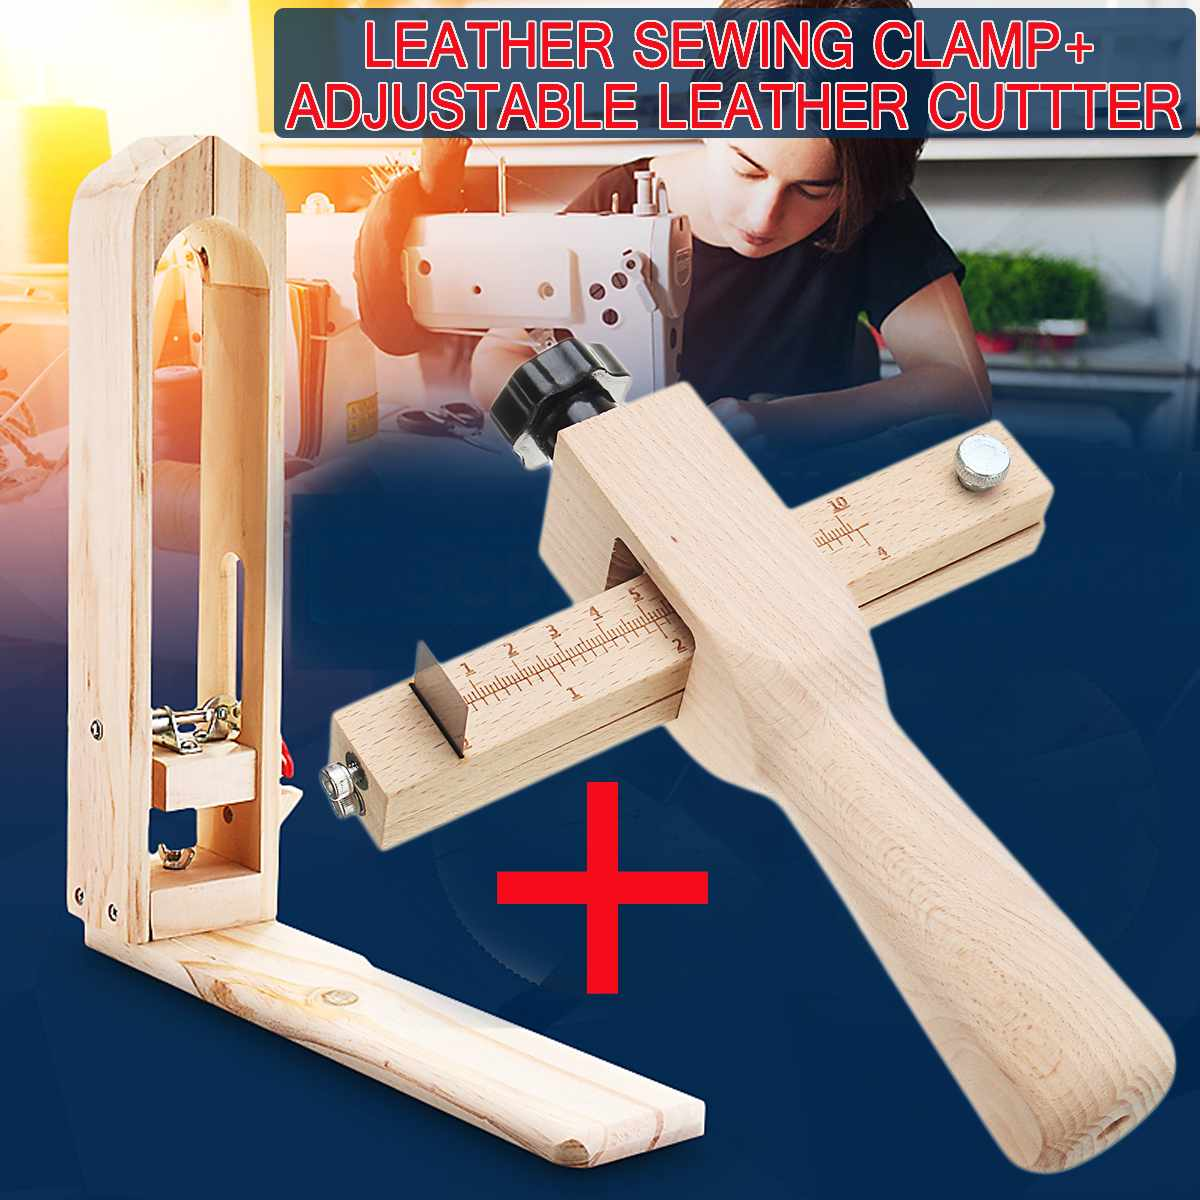 Wood Sewing Tools Leather Craft Retaining Clip Table Desktop Stitching Lacing Pony Horse Clamp + Adjustable Leather Strip Cutter